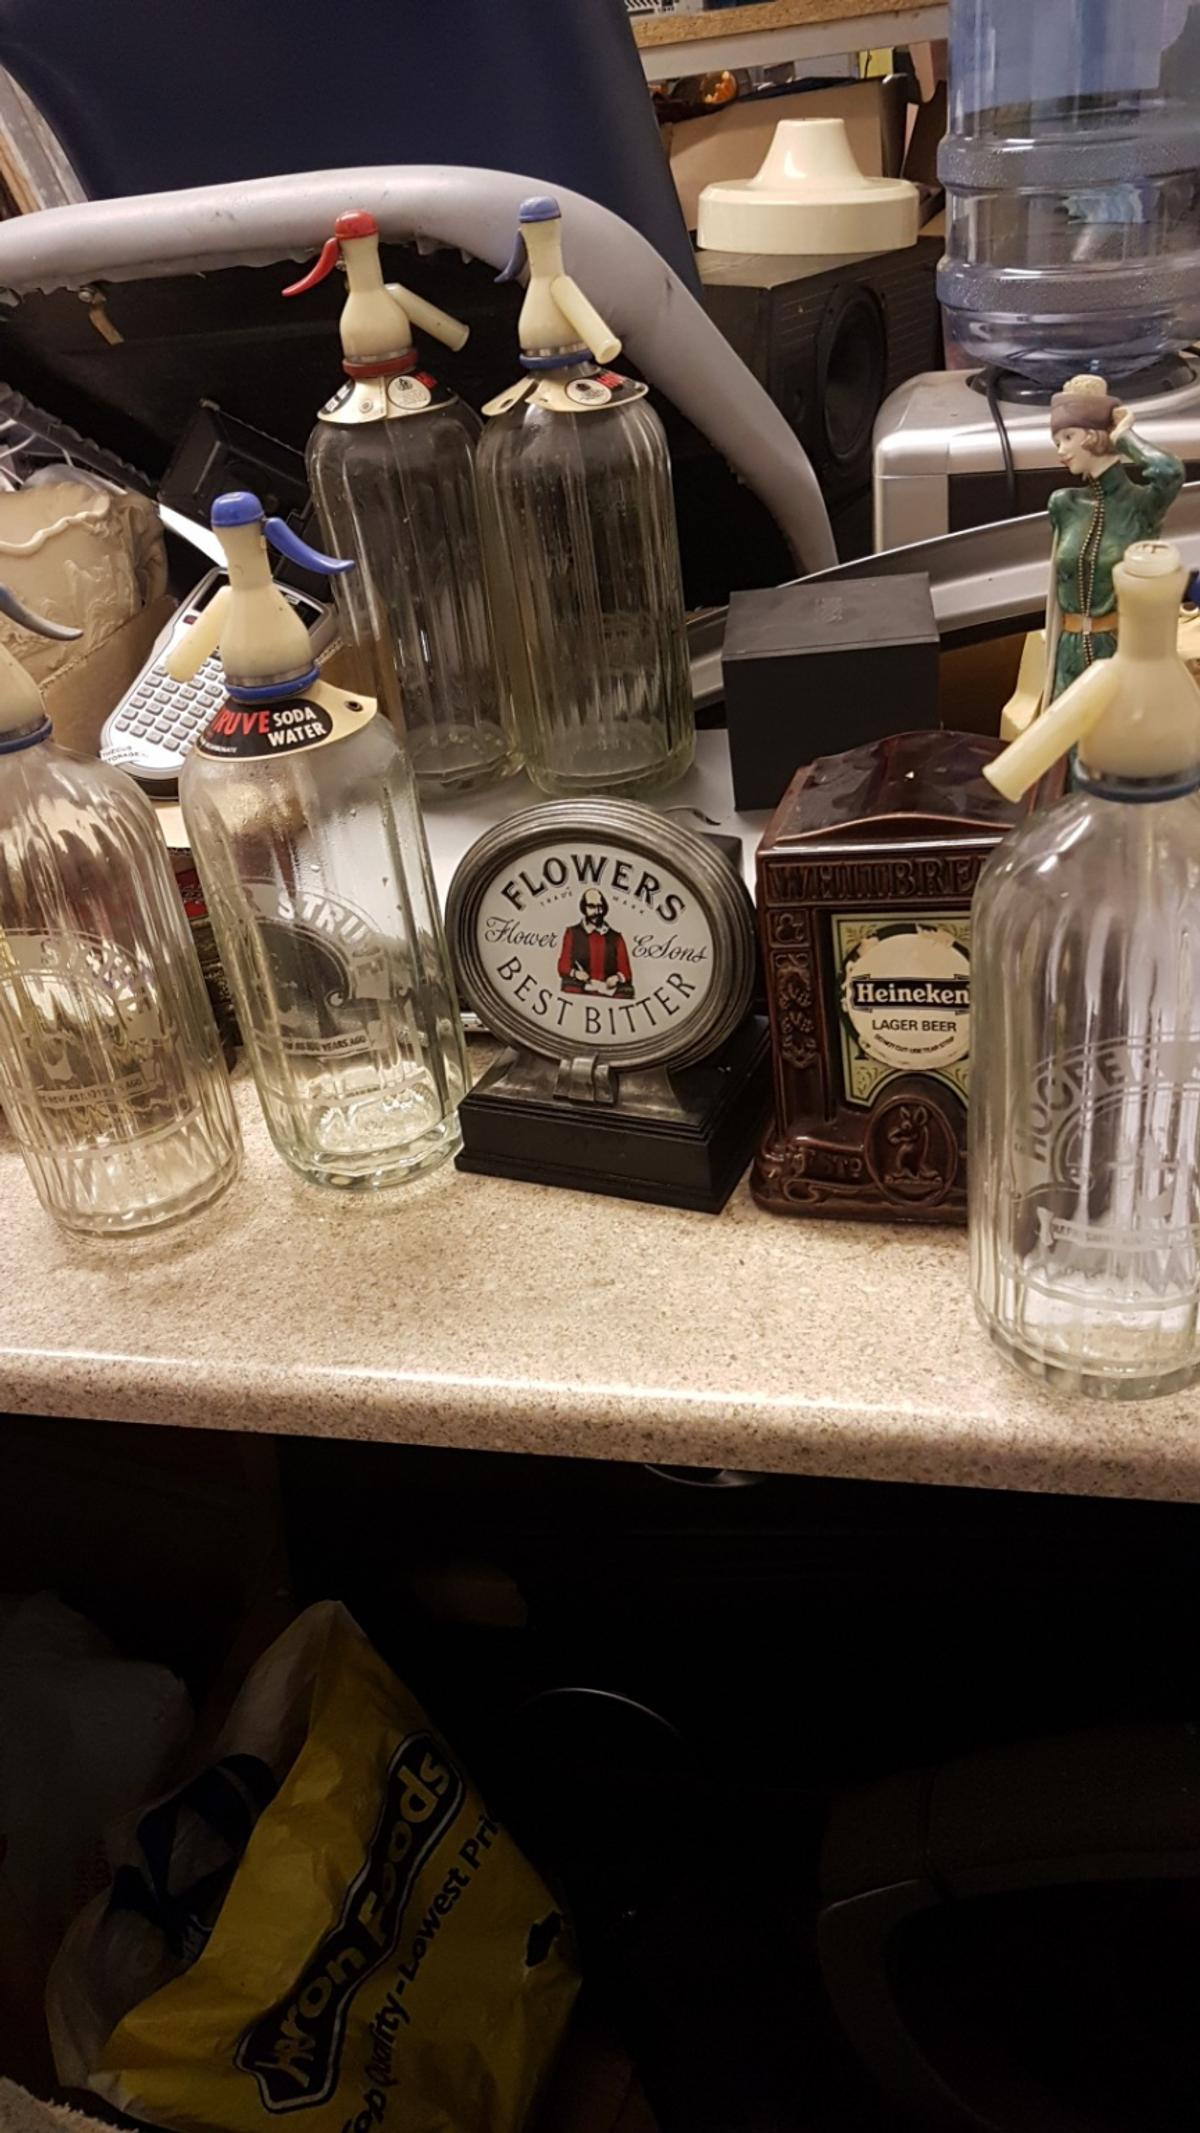 5 vintage soda water bottles 2 bar sighns ideal for display or man cave items open to offers on seperate or man cave items